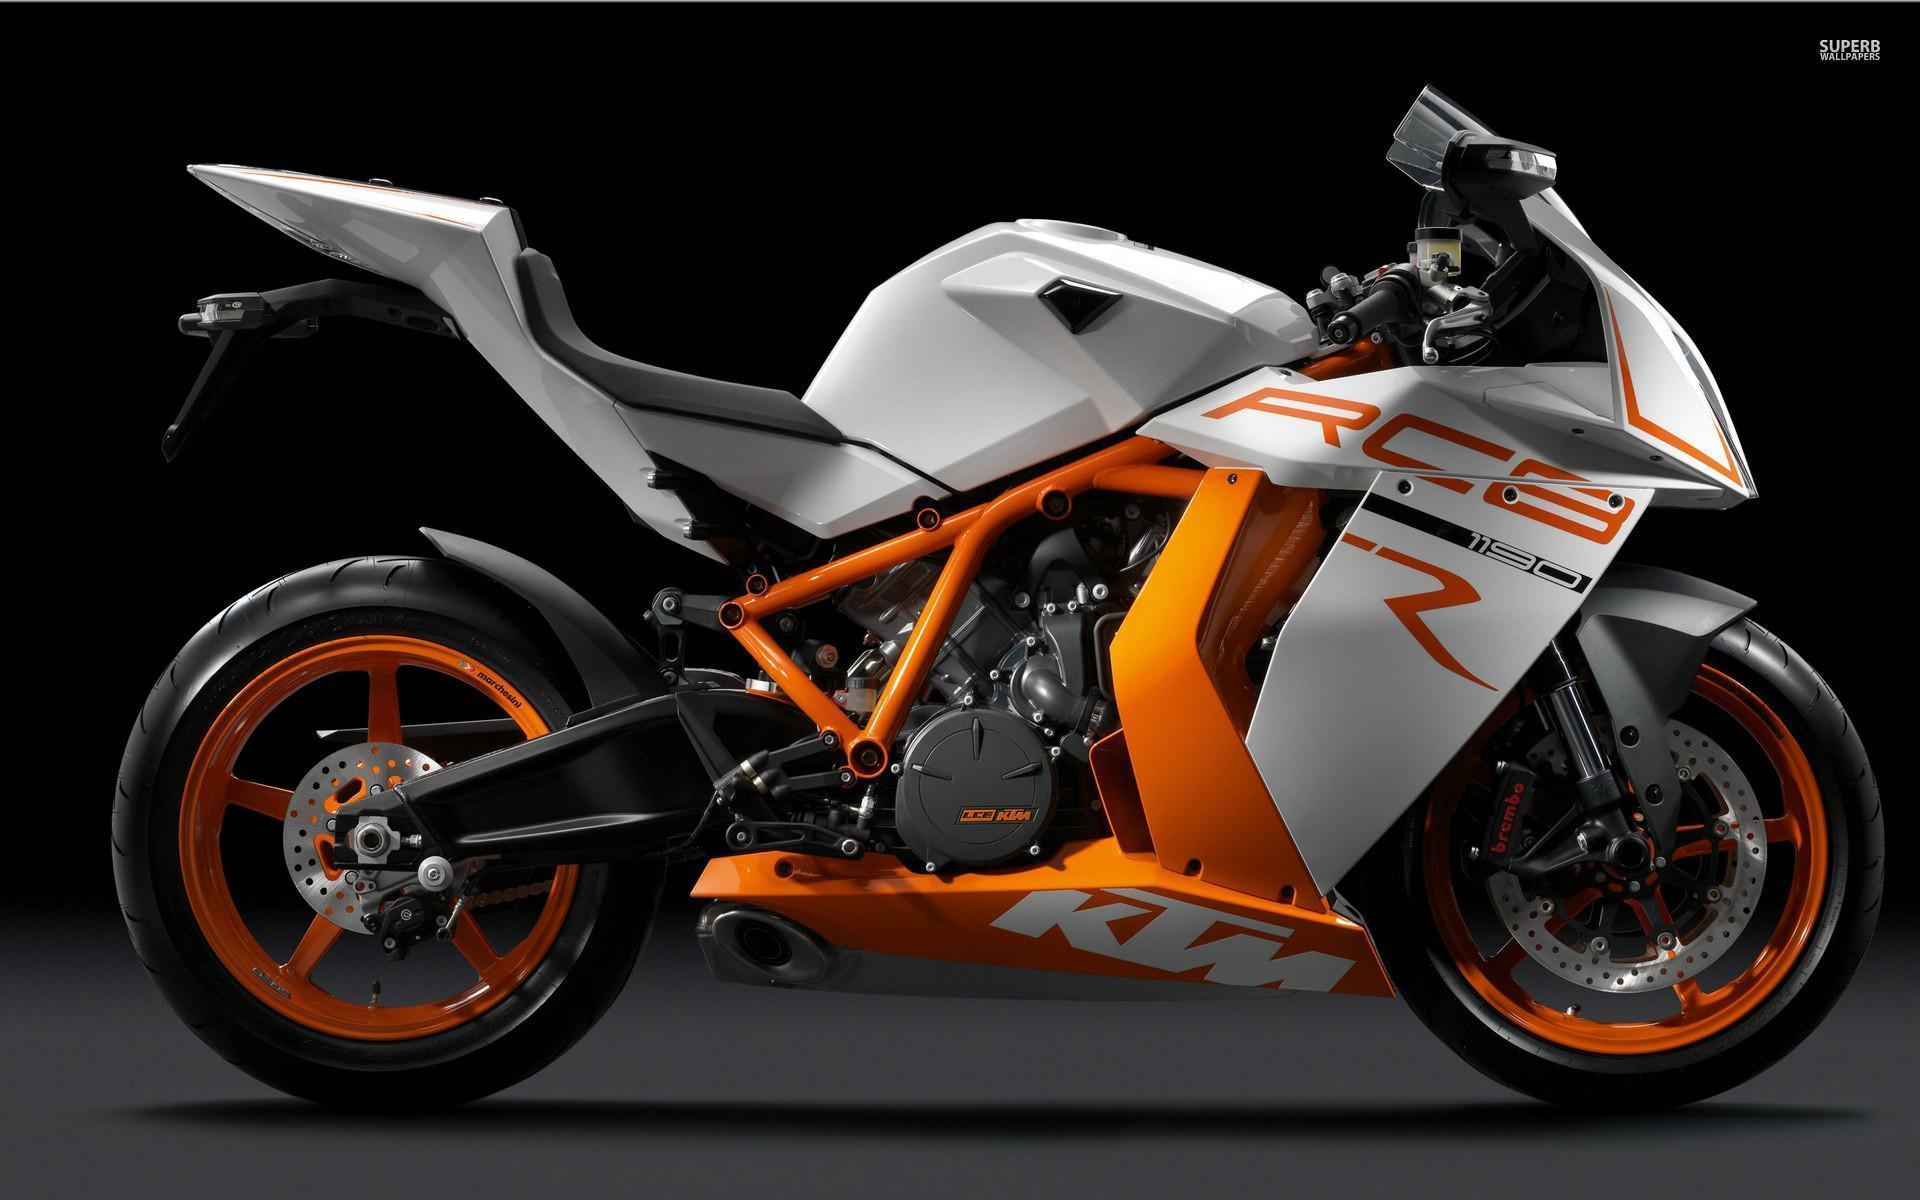 Ktm Rc8 2015 Wallpapers HD Backgrounds Image